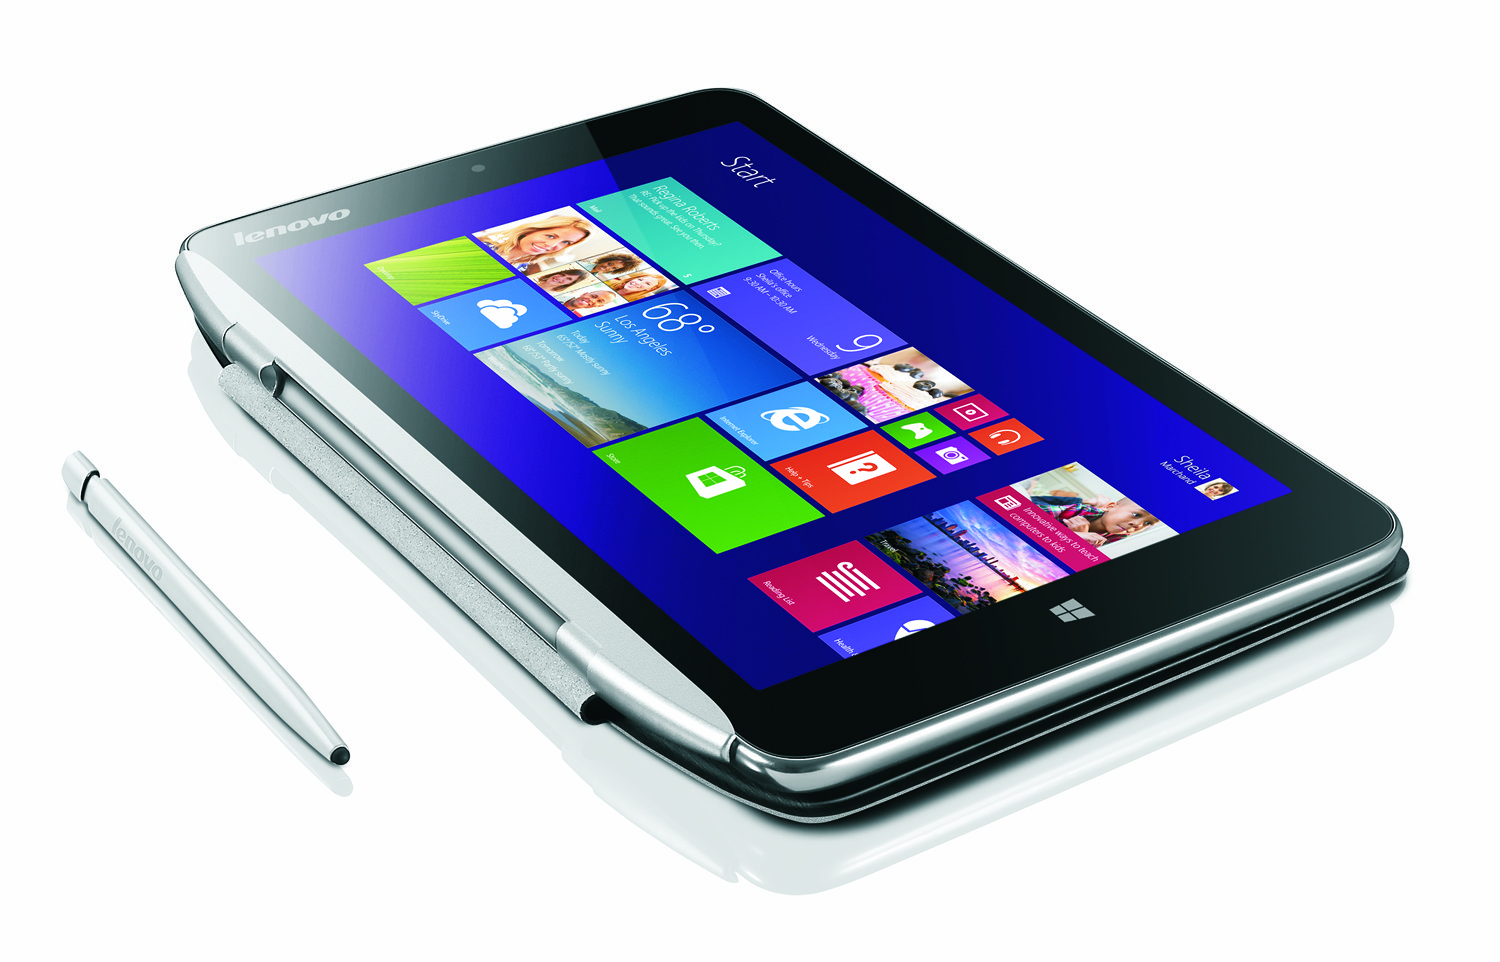 lenovo announces the miix2 8 inch windows tablet news. Black Bedroom Furniture Sets. Home Design Ideas